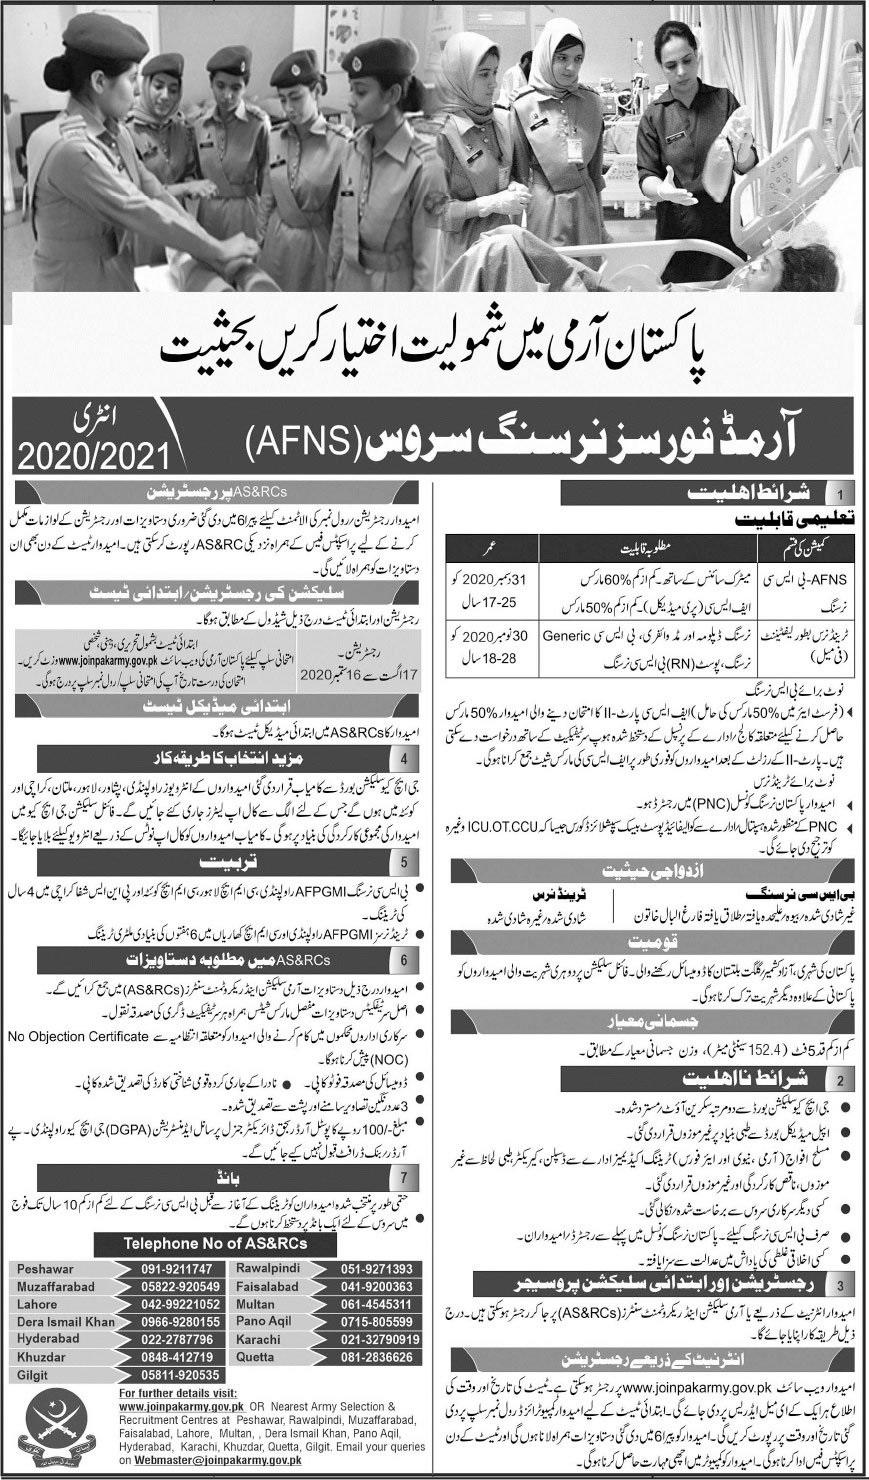 Join Pakistan Army As a Armed Forces Nursing Service (AFNS) Entry 2020-2021